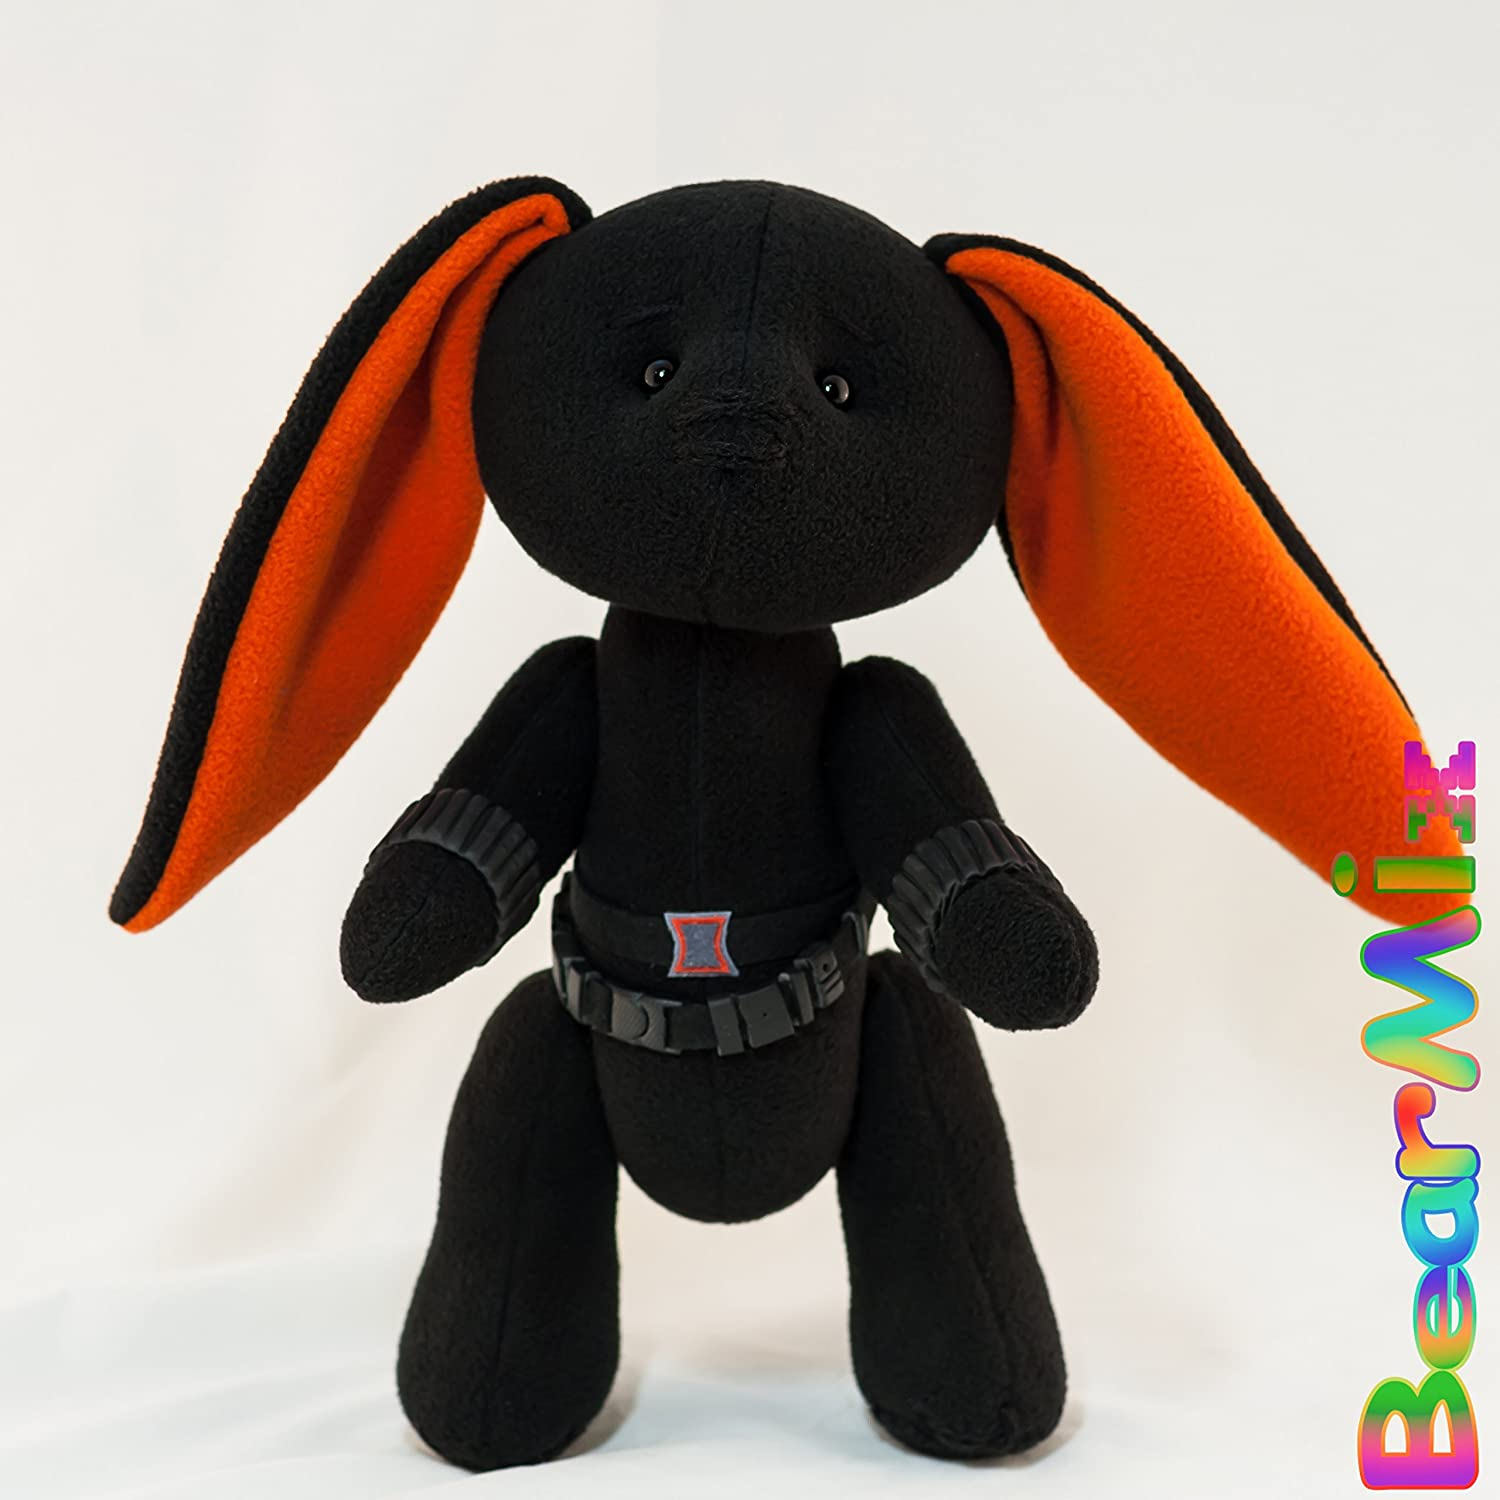 Black Widow bunny - marvel superhero movie comic plush toy avengers Natasha Romanova